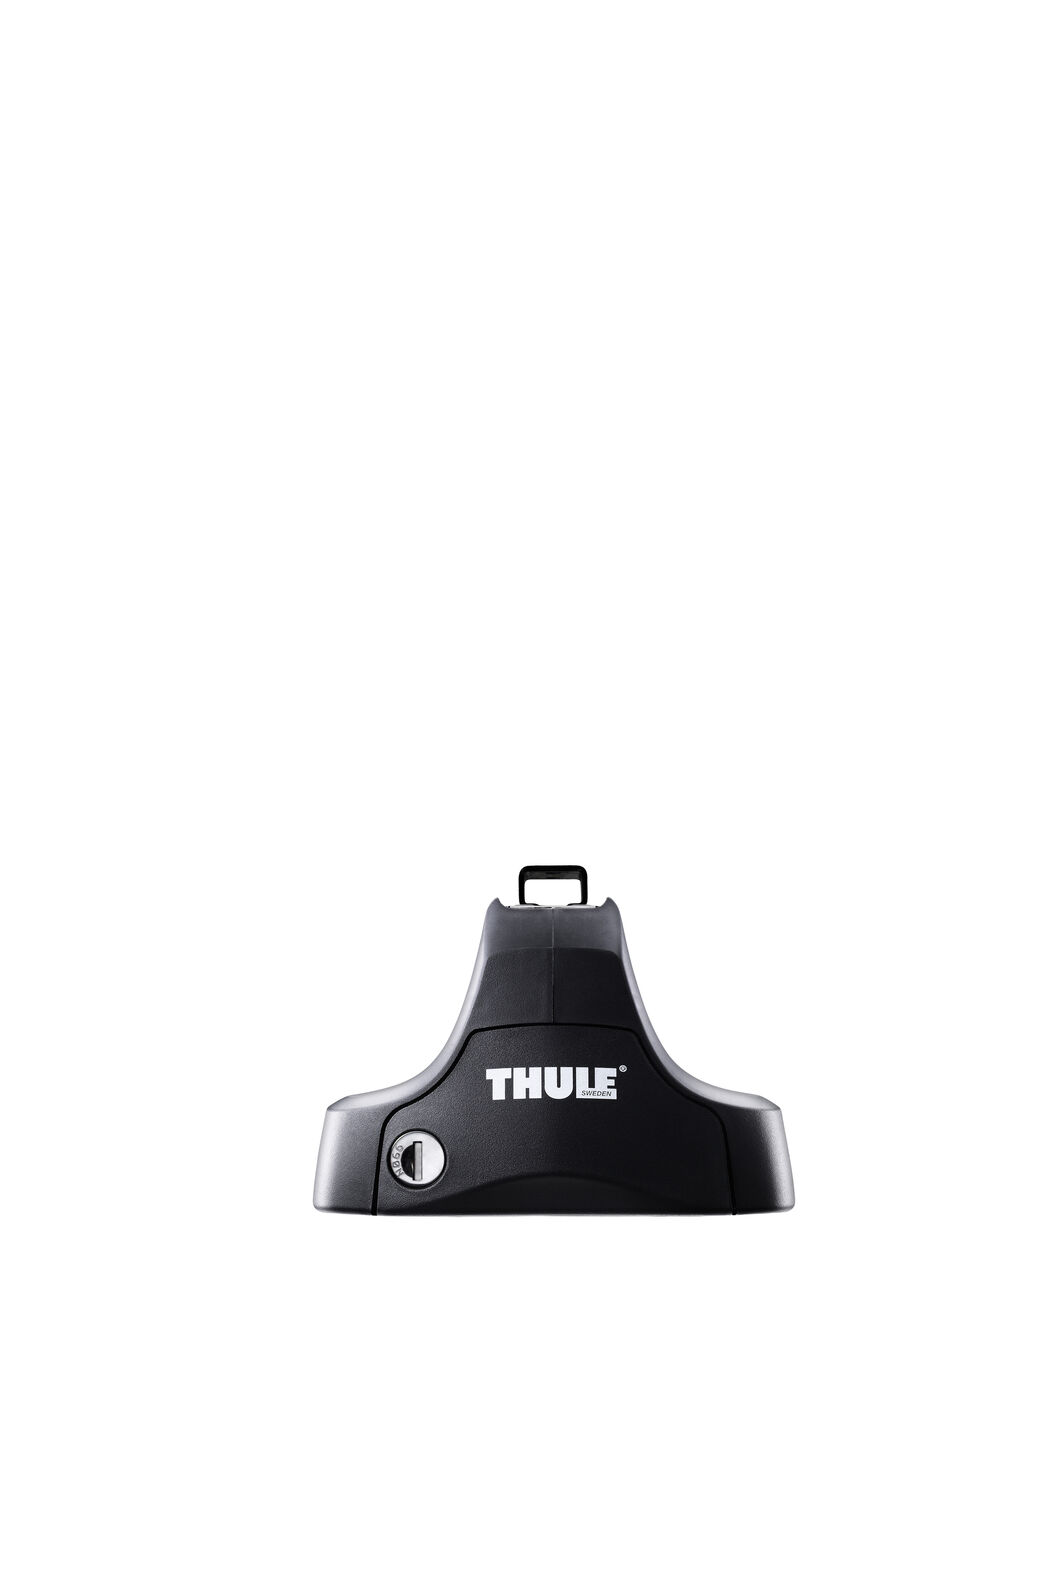 Thule Evo Foot Pack (with Locks) — Set of 4, None, hi-res